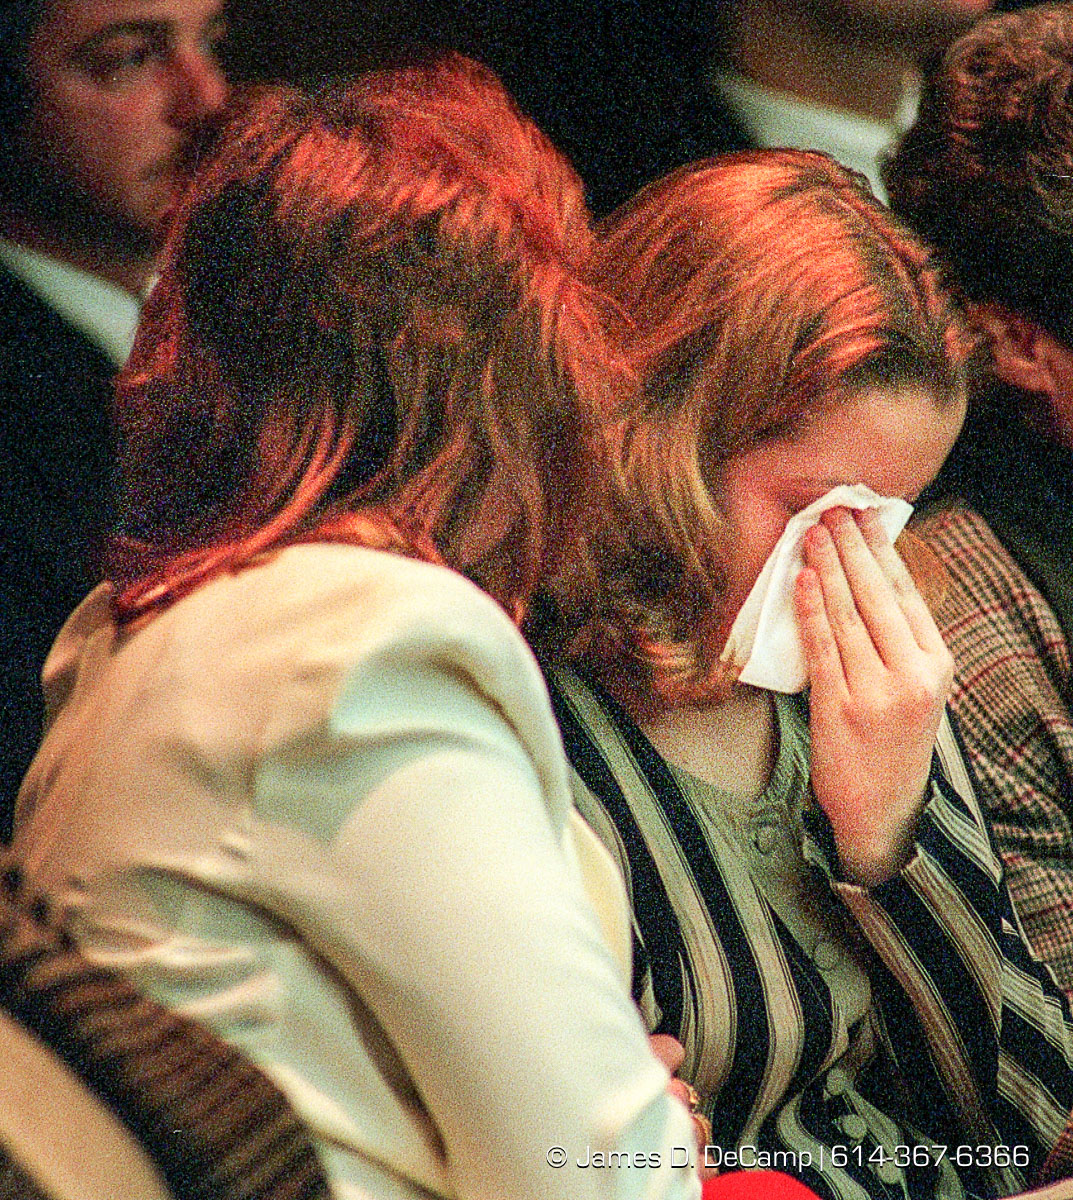 Kayla Dials, sister of the murder victim (Charles Dials, AKA Charlie Dials) that Defendant Alva Campbell supposedly killed, breaks down and is comforted by her mom Arlena Hughes, left, during opening statements as prosecuting attorney Ron O' Brien describes Campbell actions in Franklin County Common Pleas Courtroom 6D. (© James D. DeCamp | http://www.JamesDeCamp.com | 614-367-6366) [Photographed on Fuji film using Canon F-1 & T-90 cameras with L series lenses. Digitized with Kodak RFS 2035 plus film scanners]